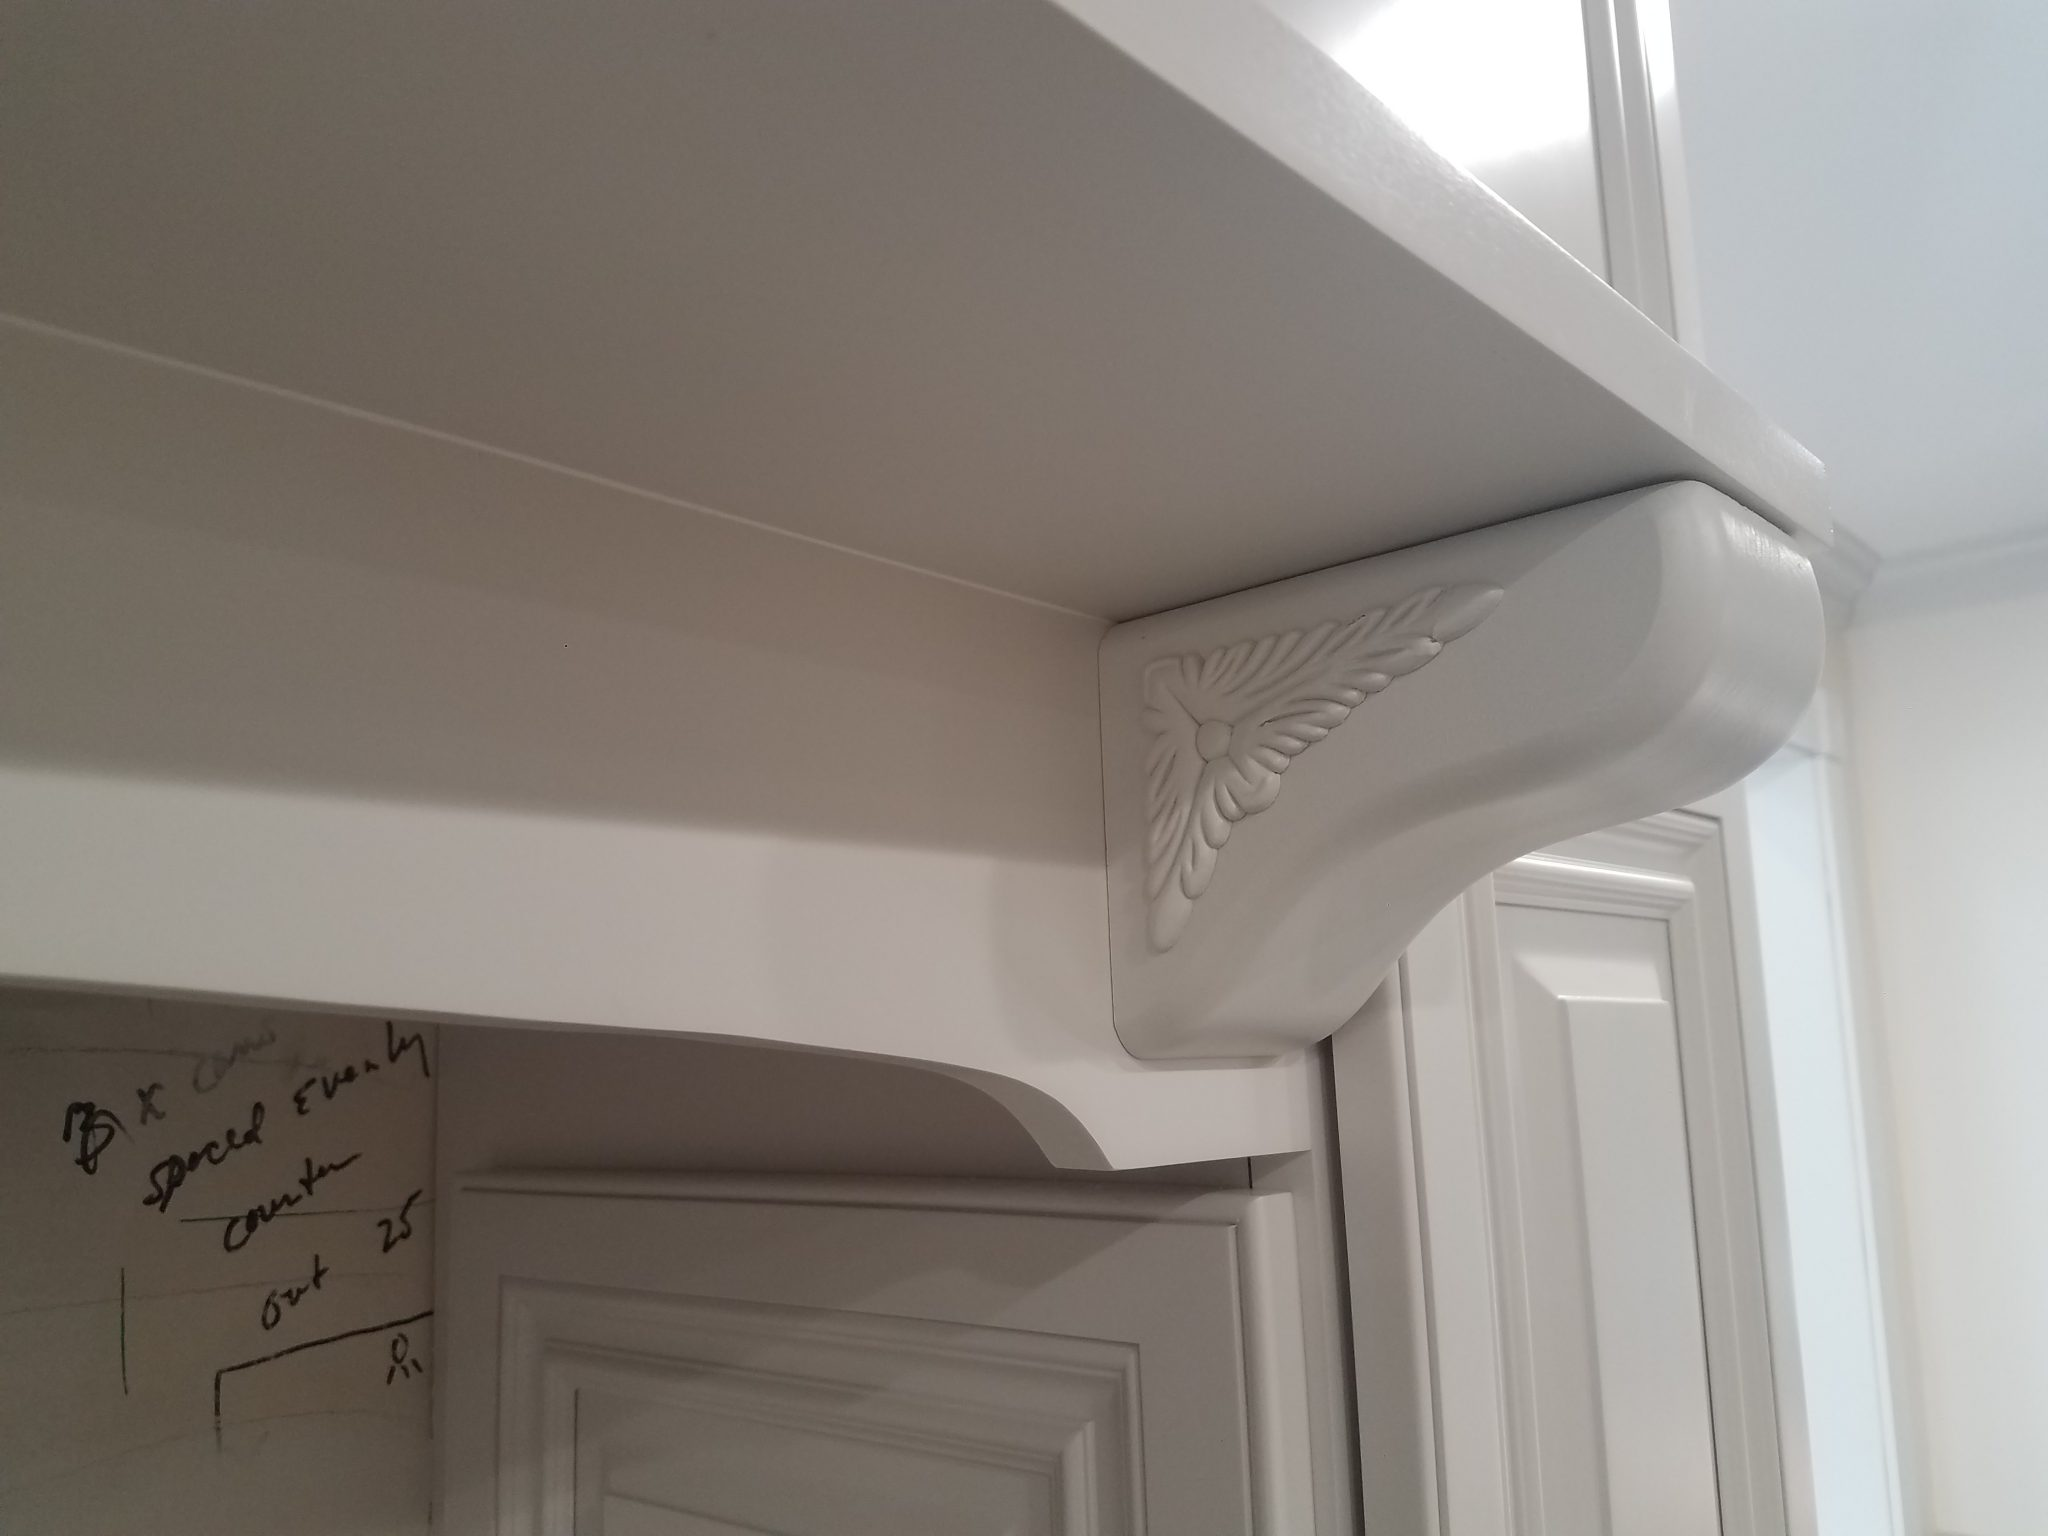 Custom Stove Mantels with Recessed Vents